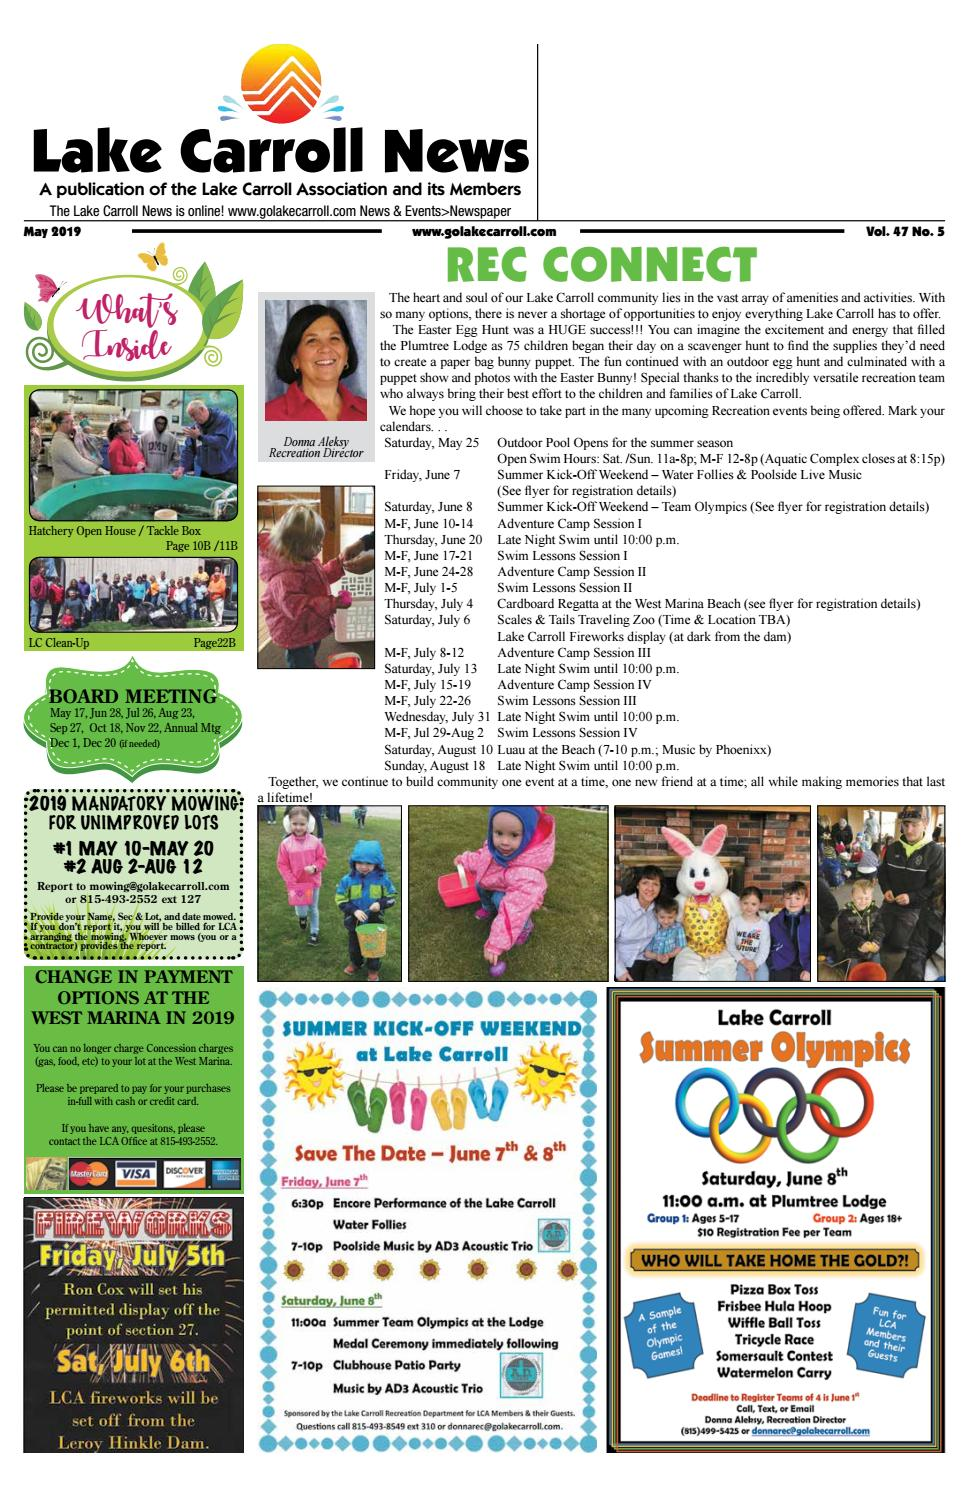 Lake Carroll News May 2019 By Lake Carrol News Issuu